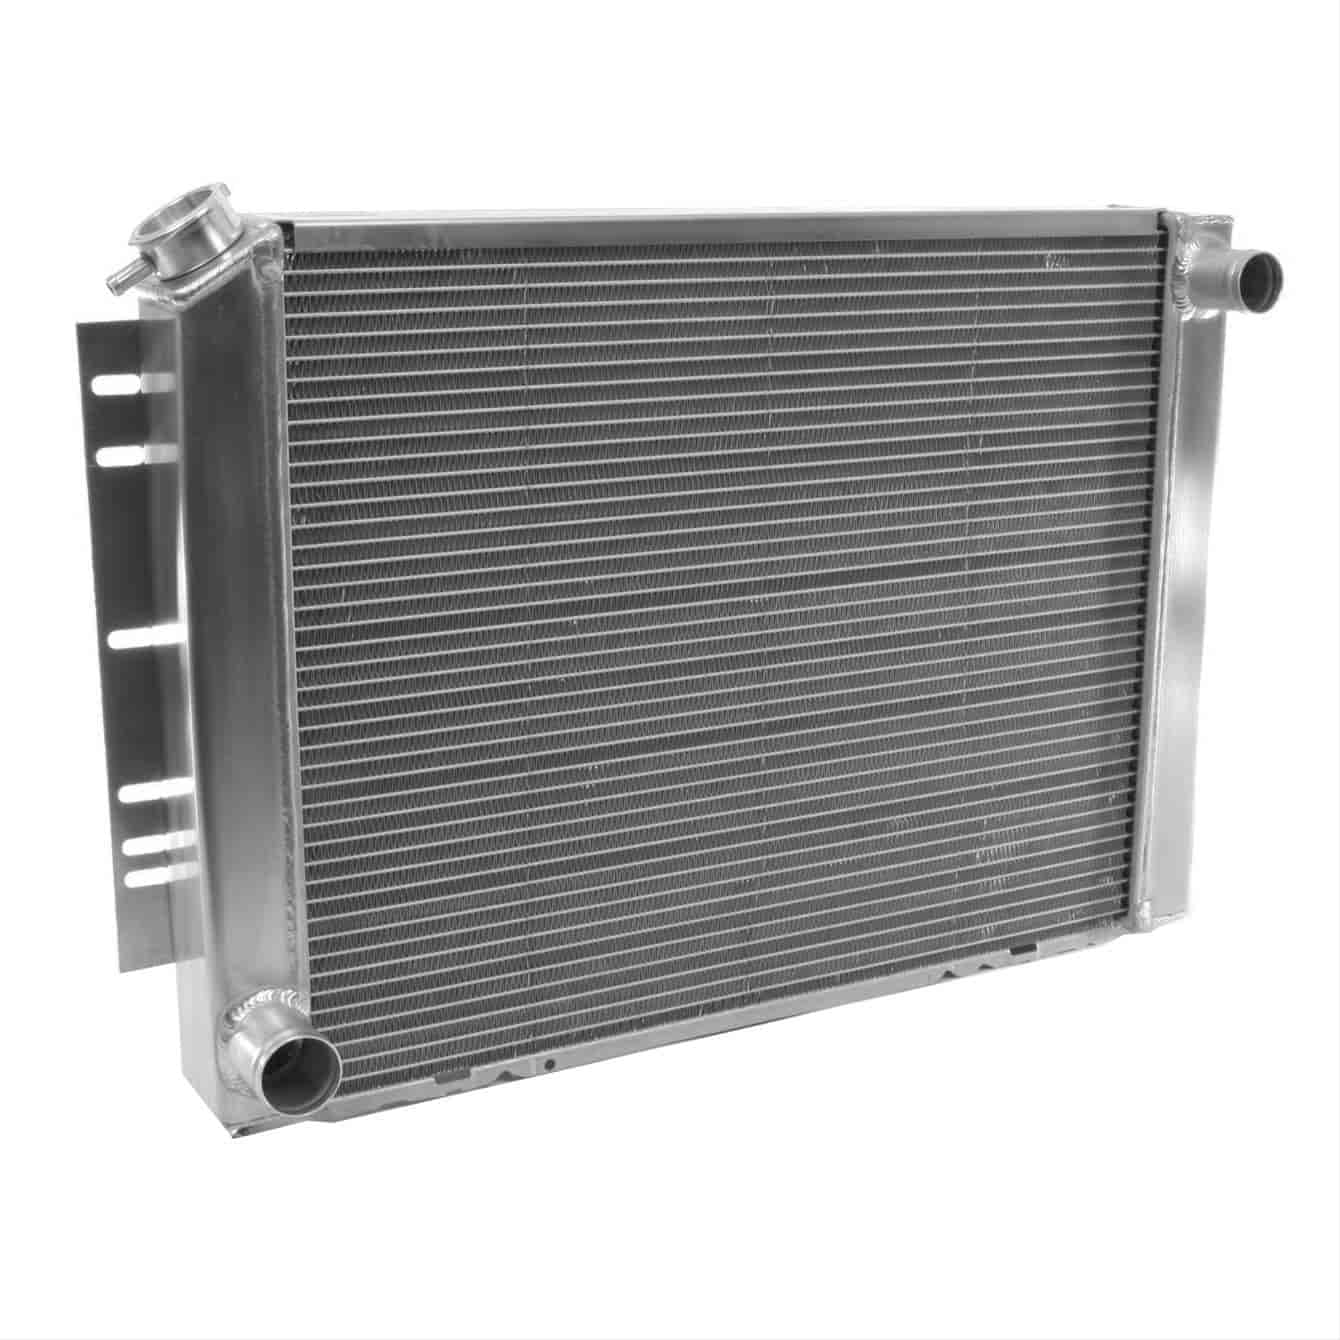 Be Cool Radiators 10038 - Be Cool Aluminator Series Direct-Fit Aluminum Radiators